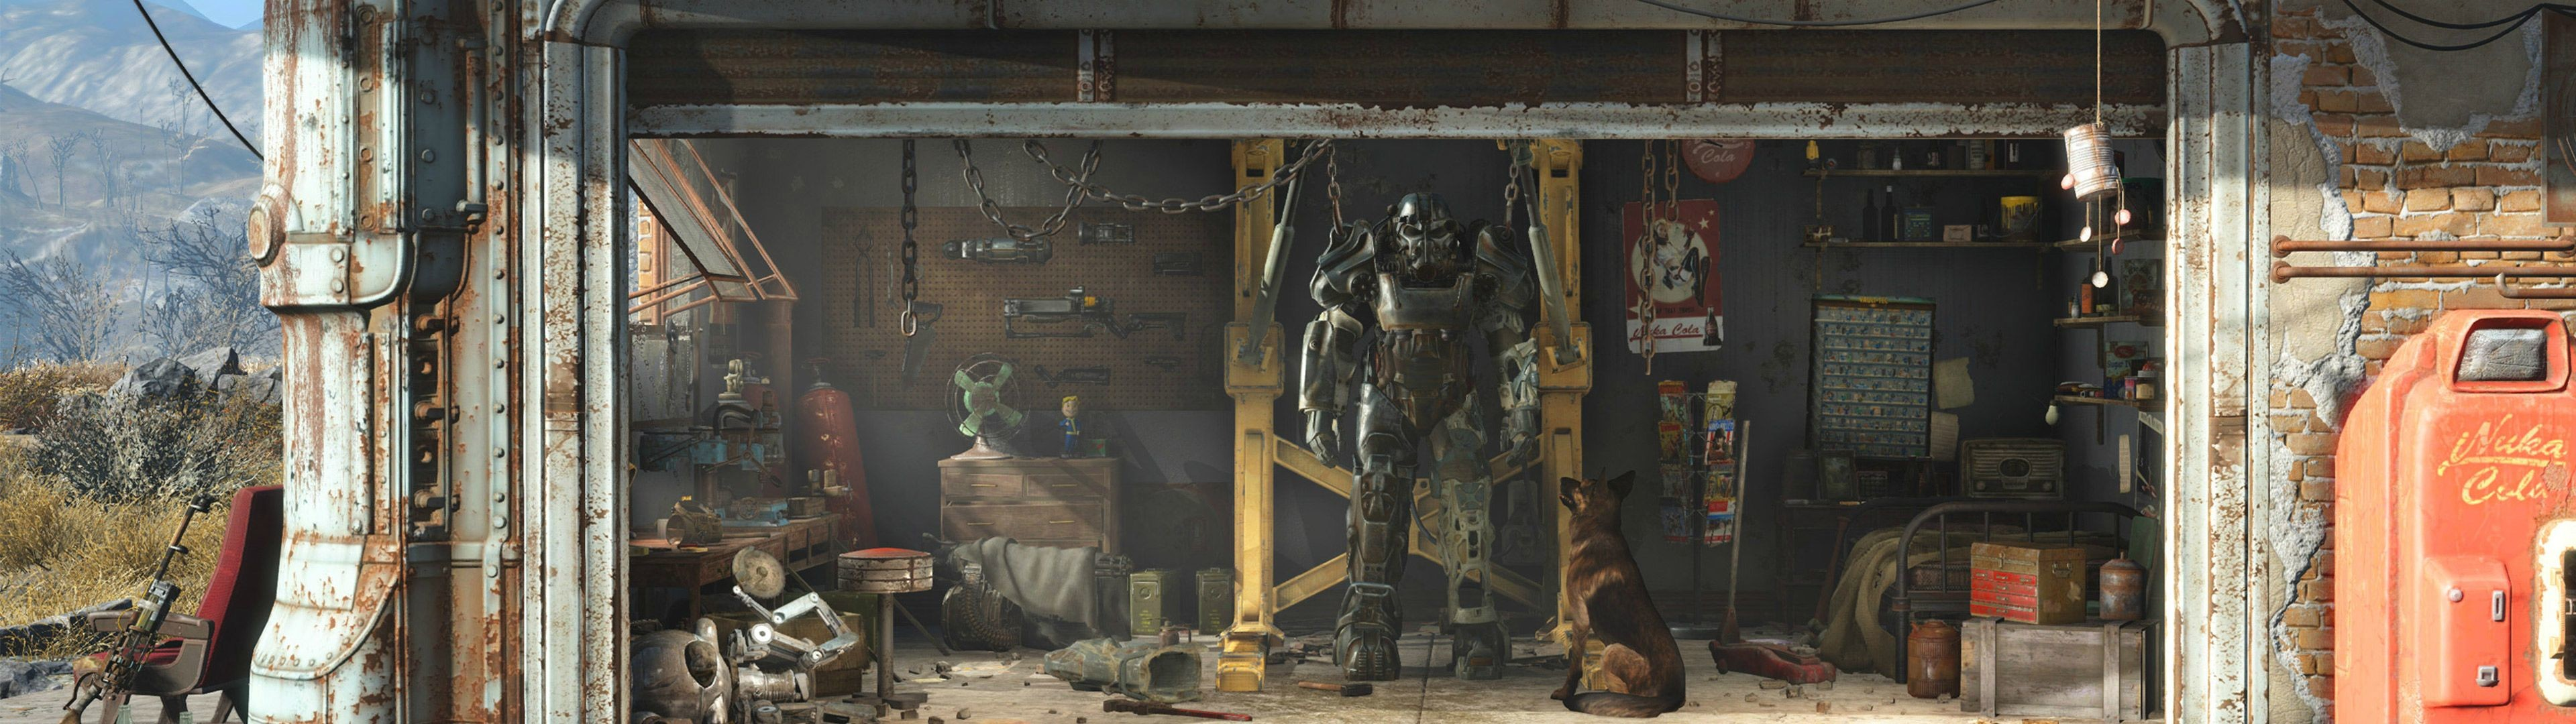 Fallout 4 dual screen wallpaper 56 images for Fallout 4 mural